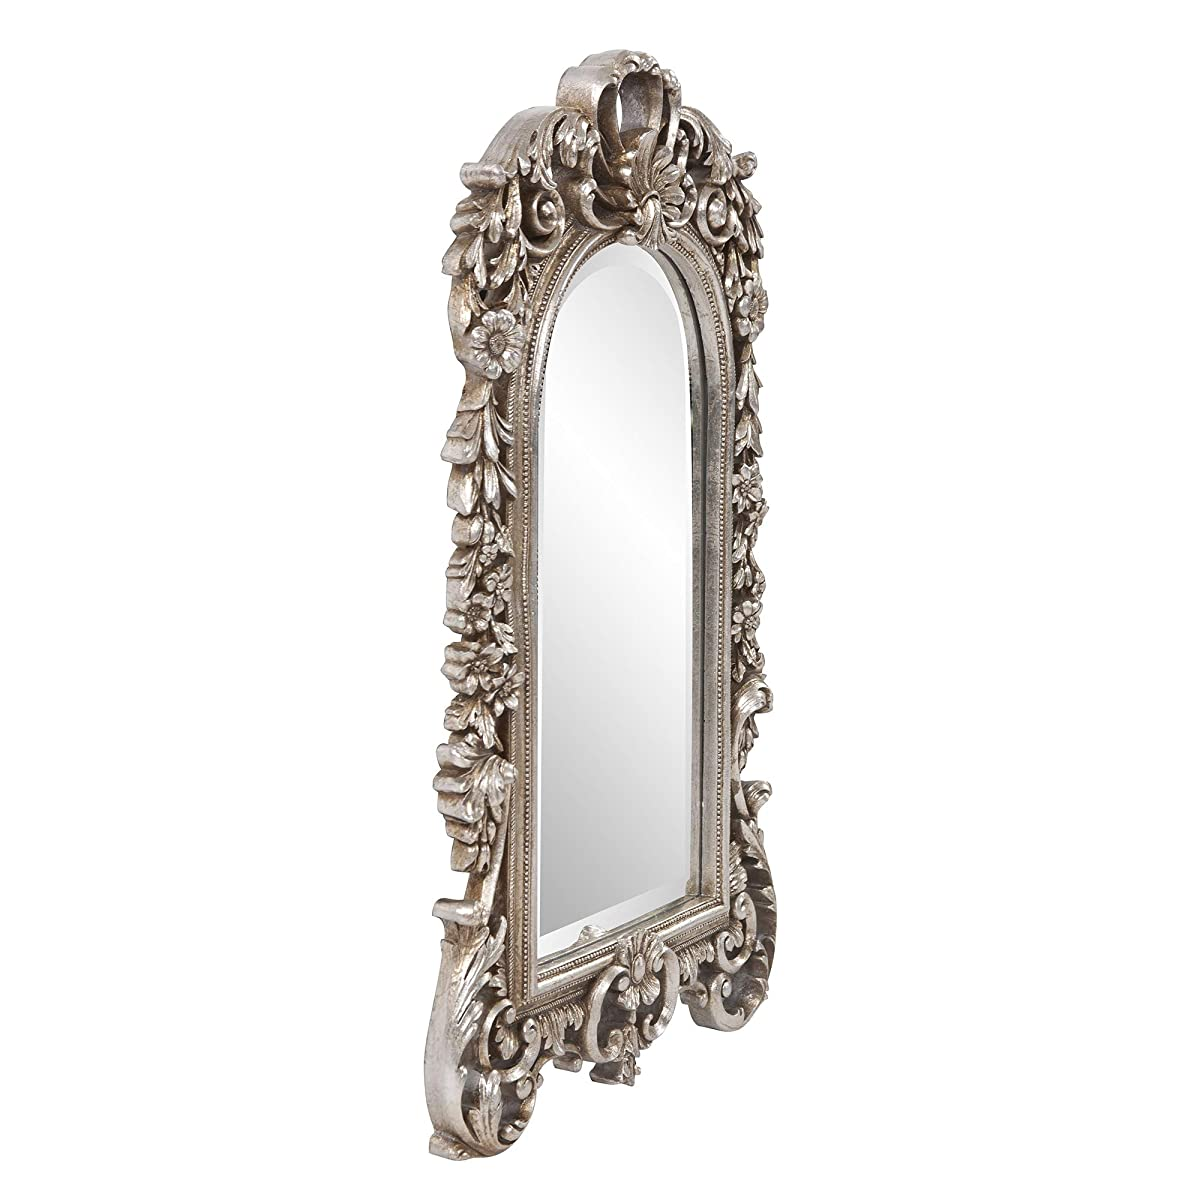 Howard Elliott Sherwood Mirror, Arched Antique Silver Resin Frame, Accent Wall Hanging Mirror